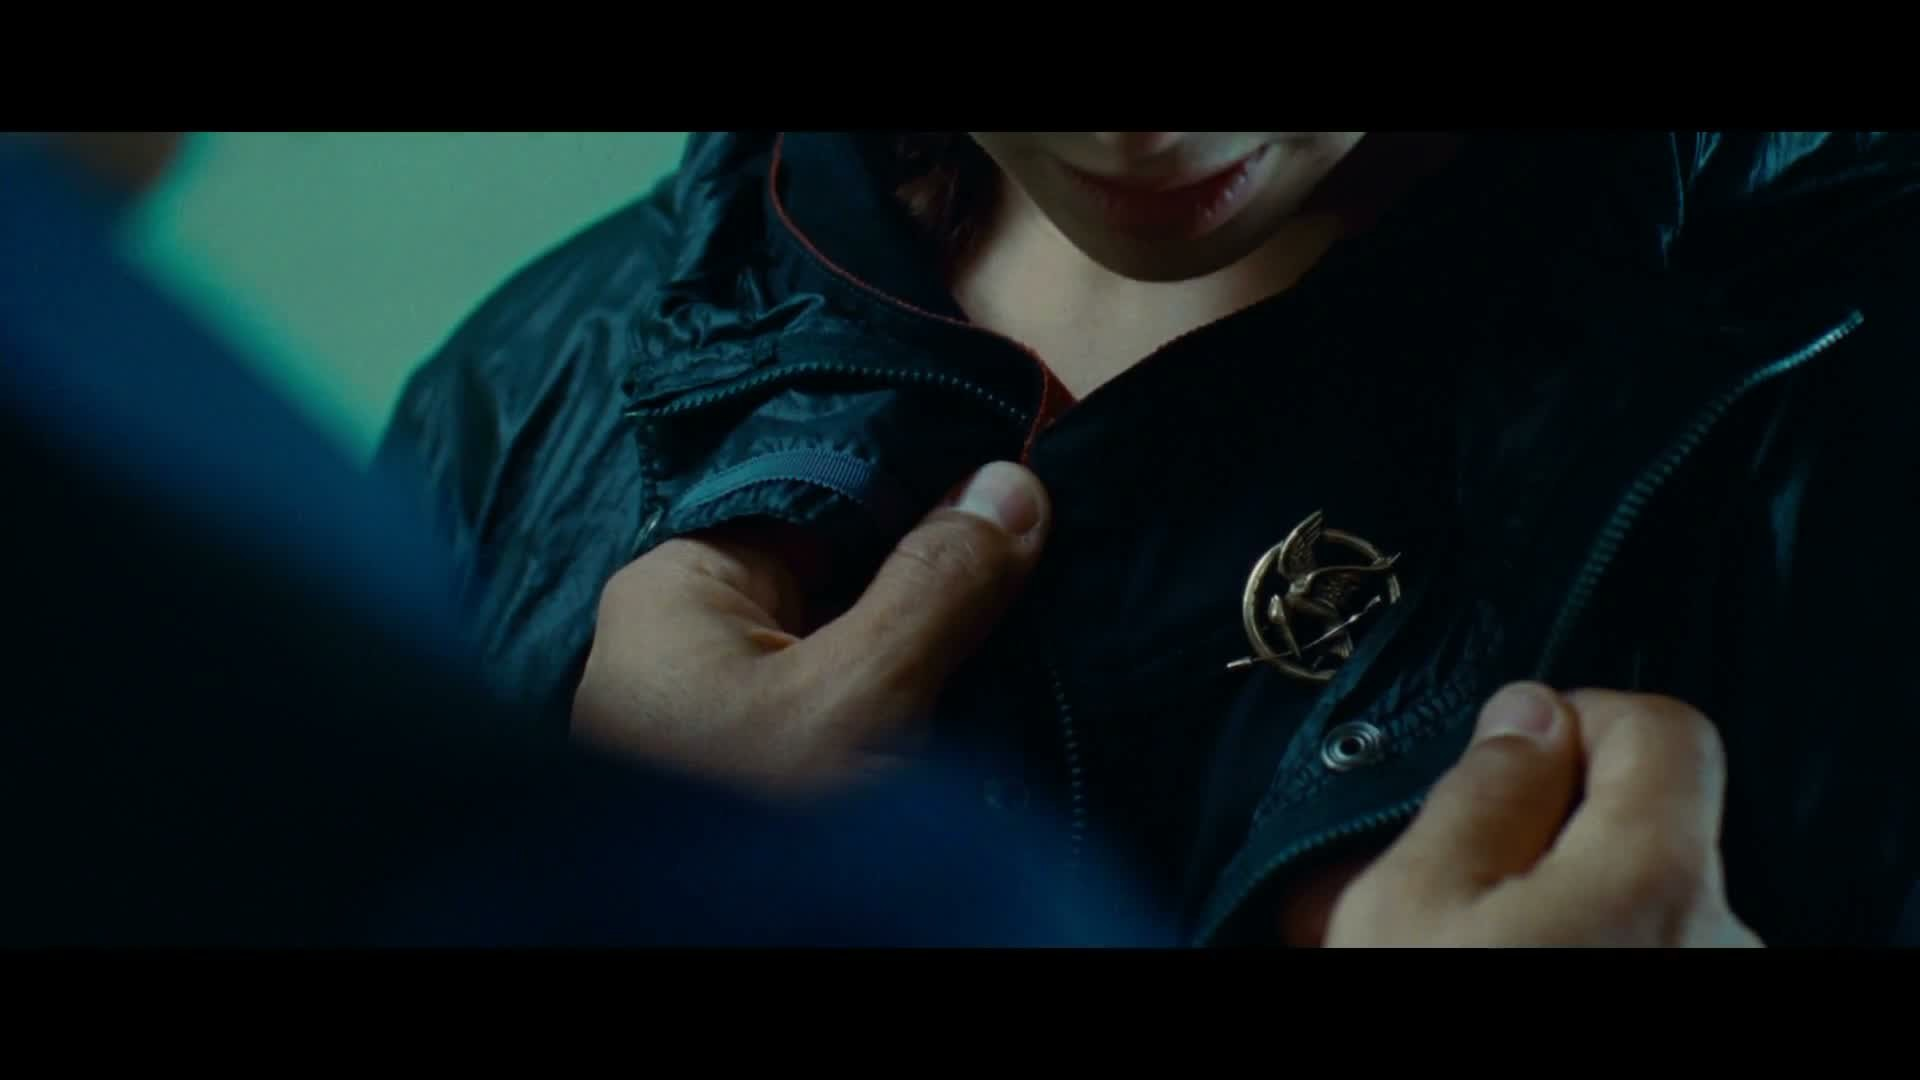 1920x1080 Cinna images 'The Hunger Games' trailer #2 HD wallpaper and background  photos